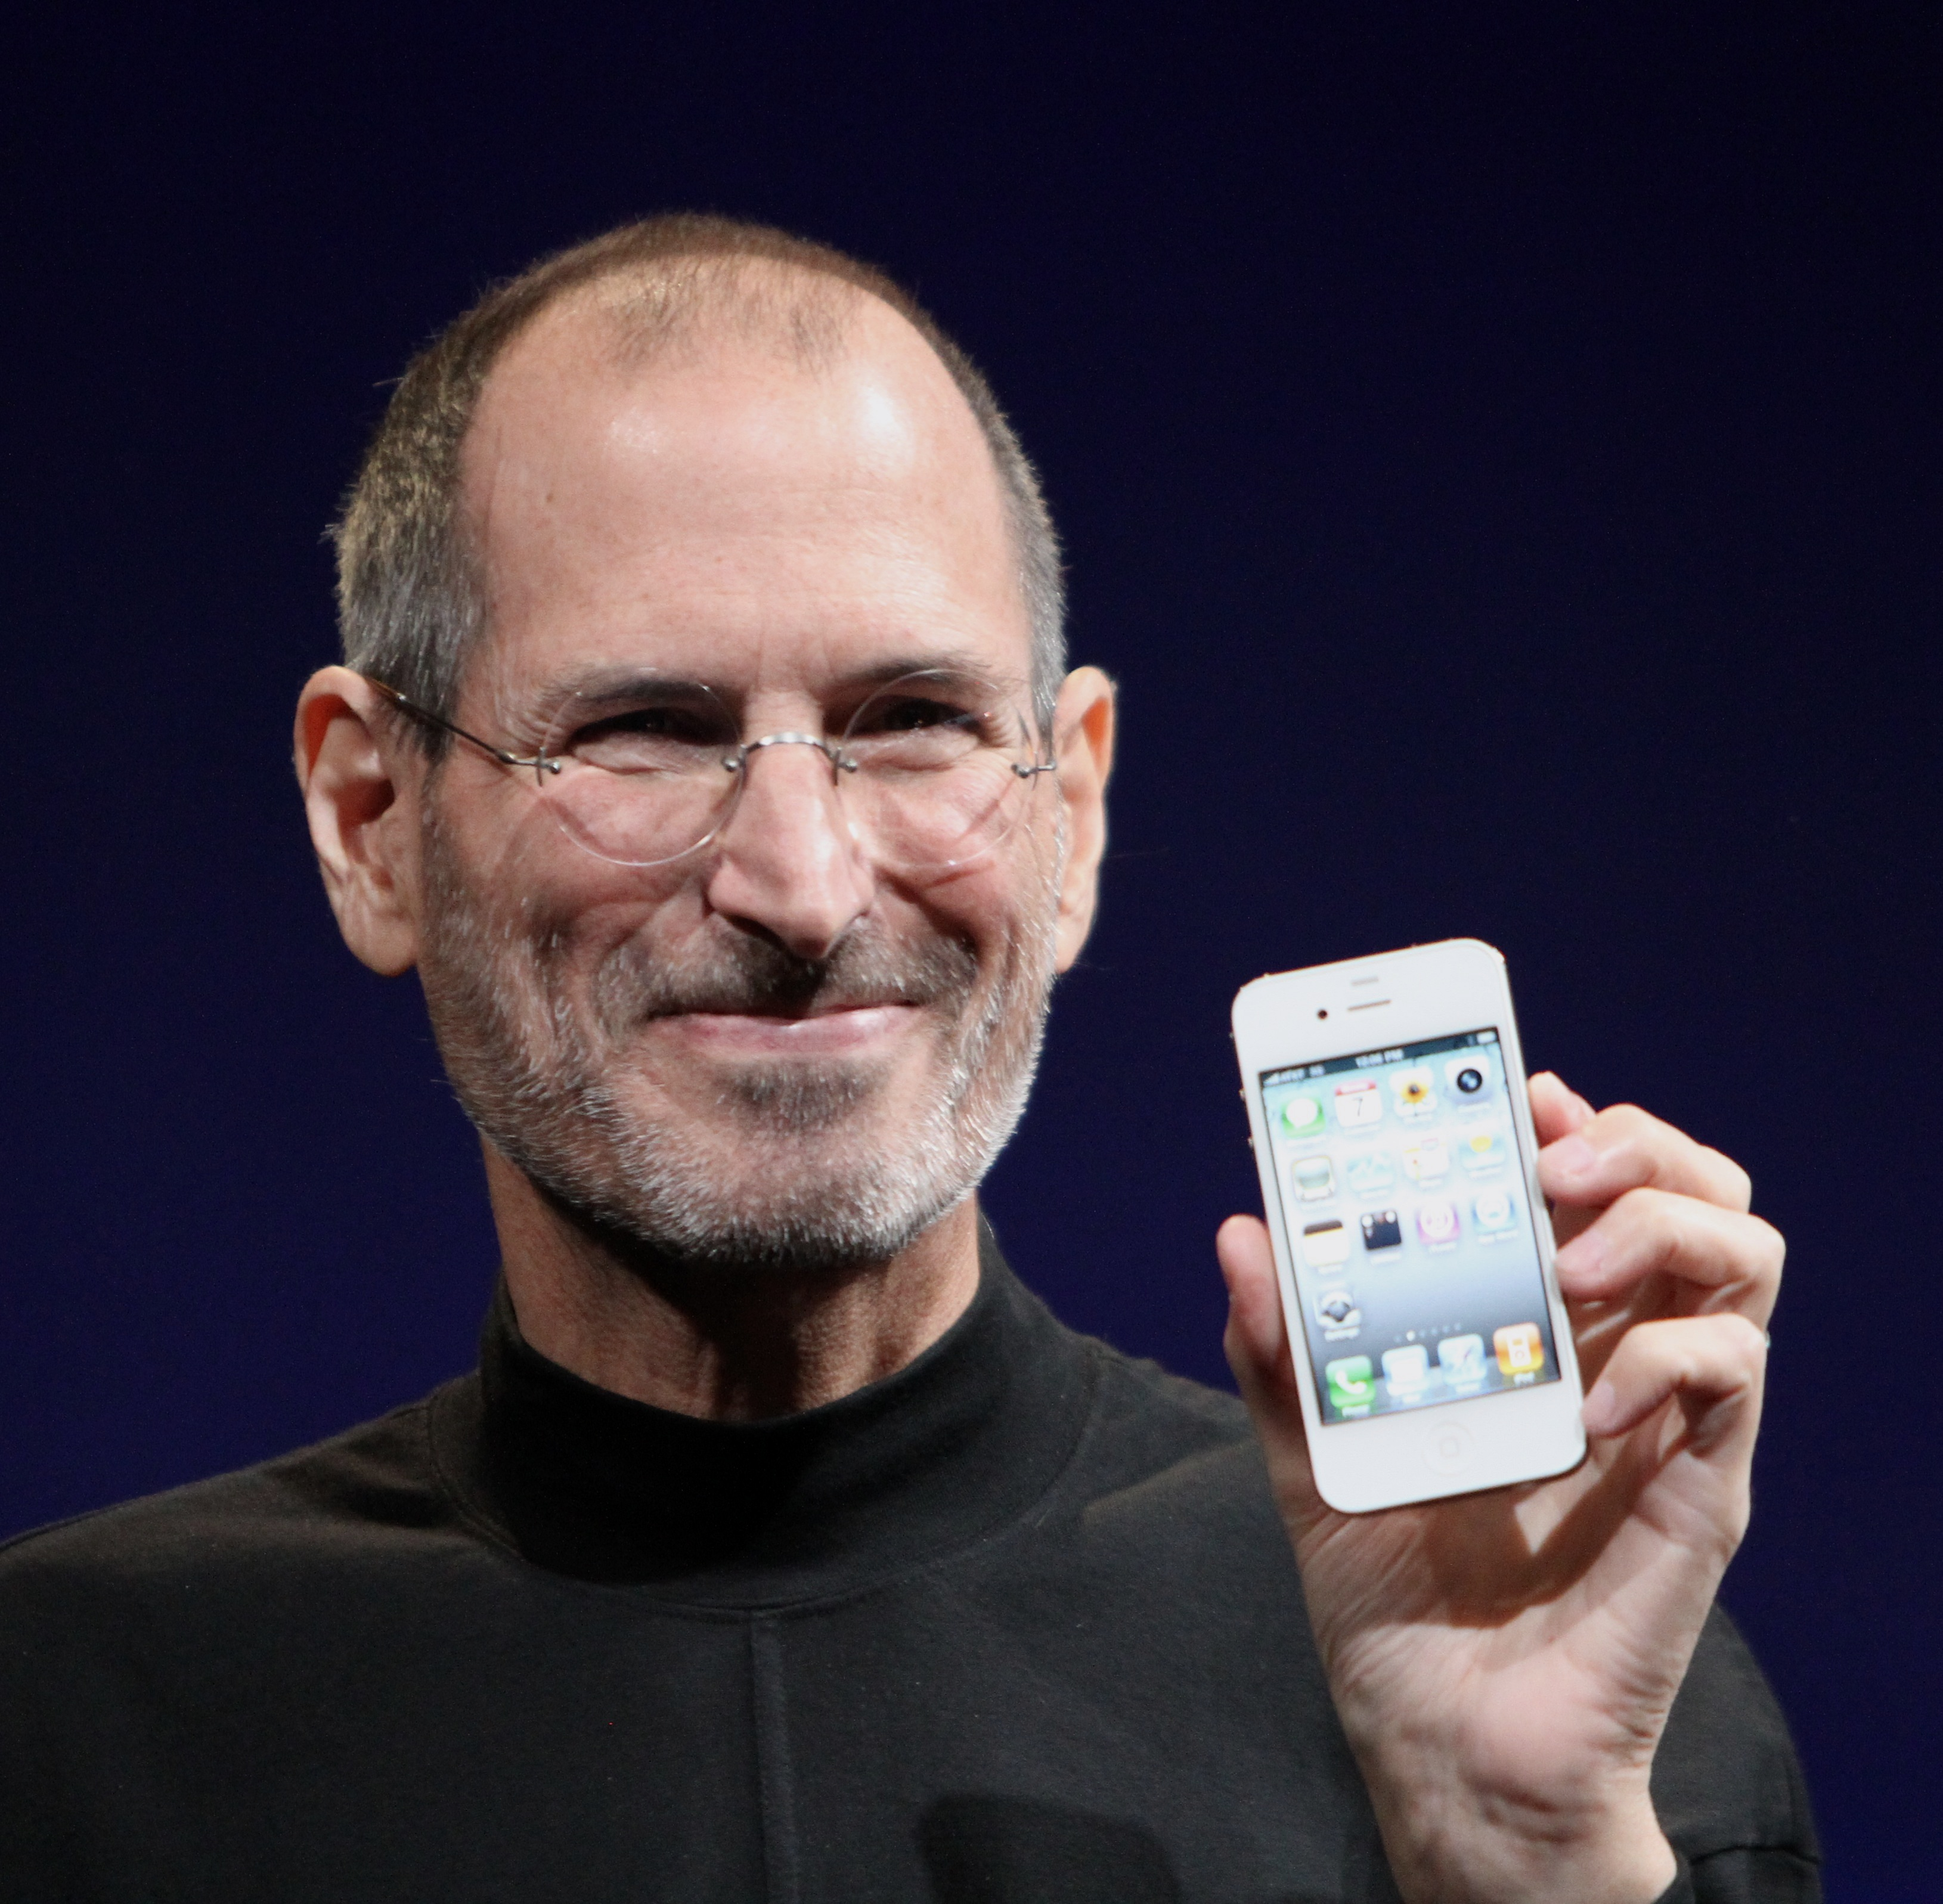 Steve Jobs and the importance of leadership